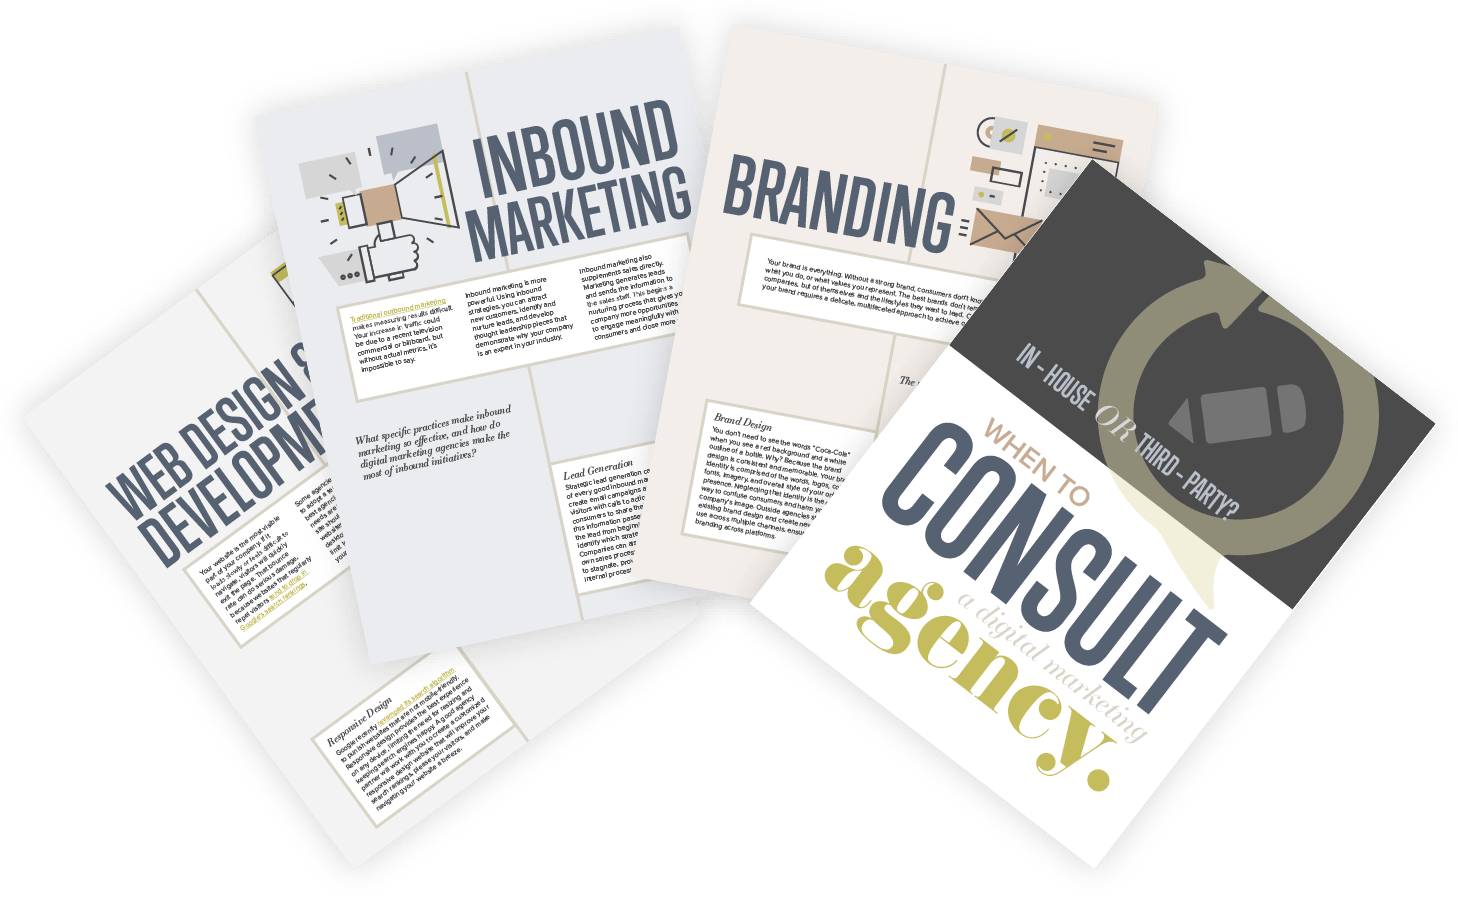 When_to_Consult_a_digital_marketing_agency